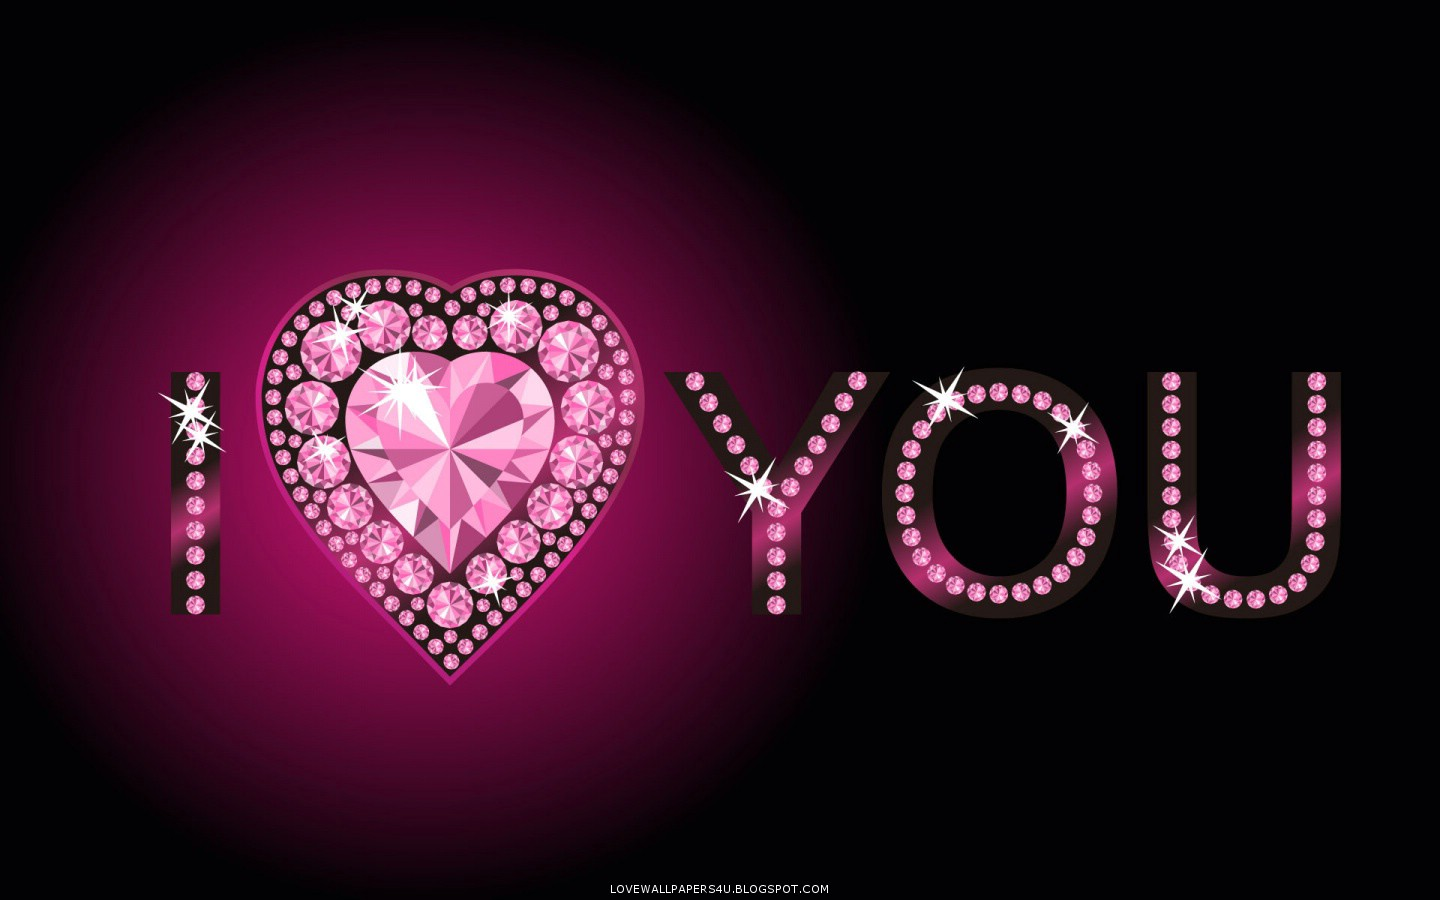 Diamonds Heart Love Wallpapers Romantic Wallpapers 1440x900